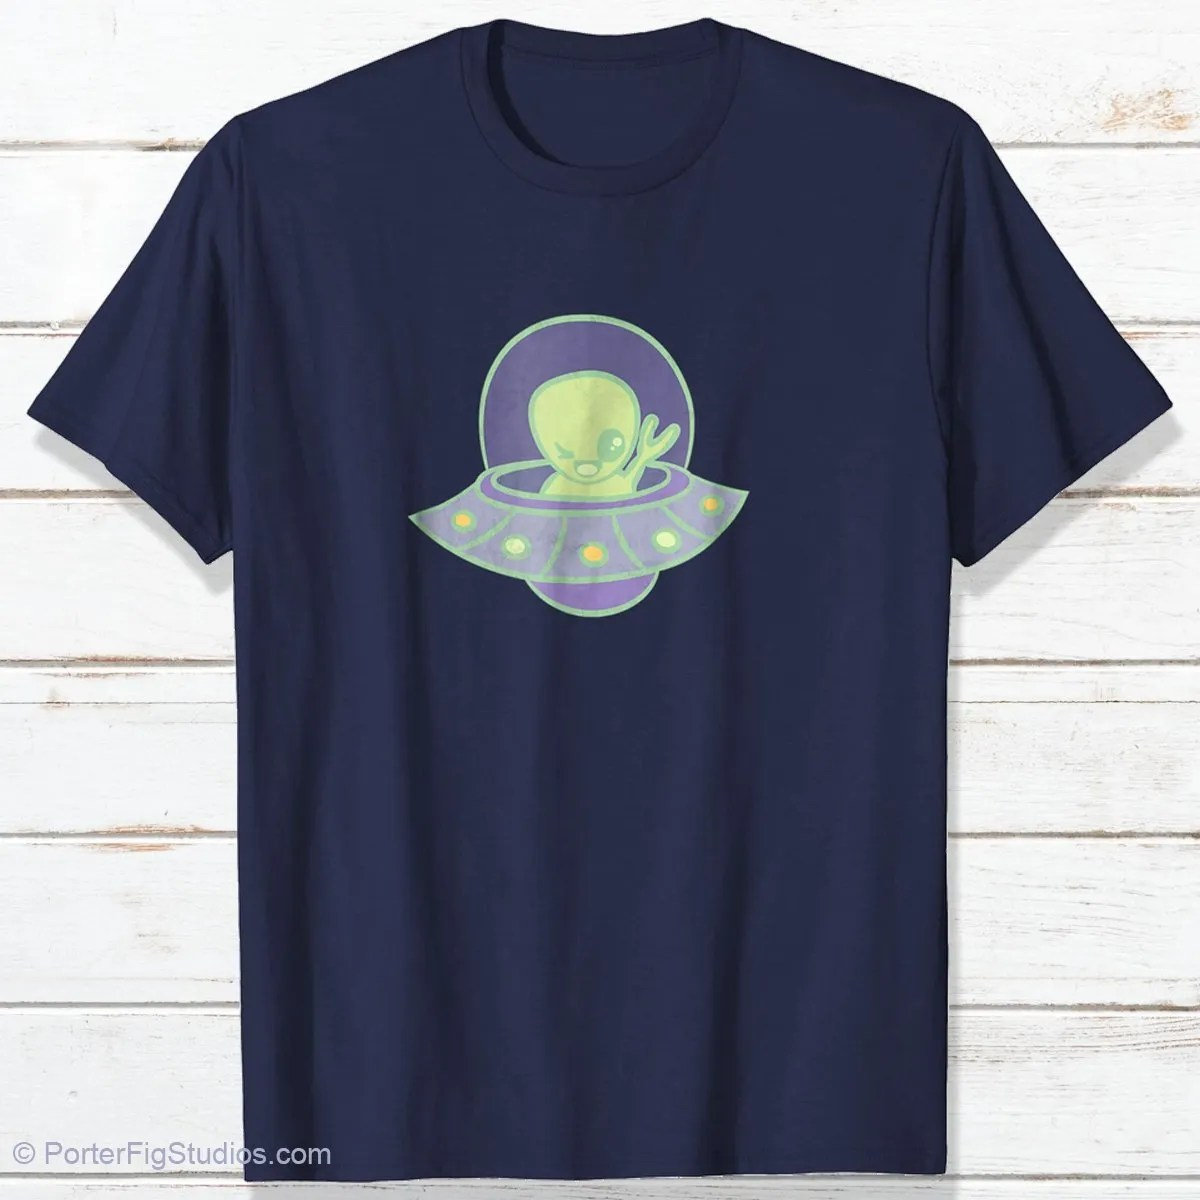 alien t-shirt by porter fig studios